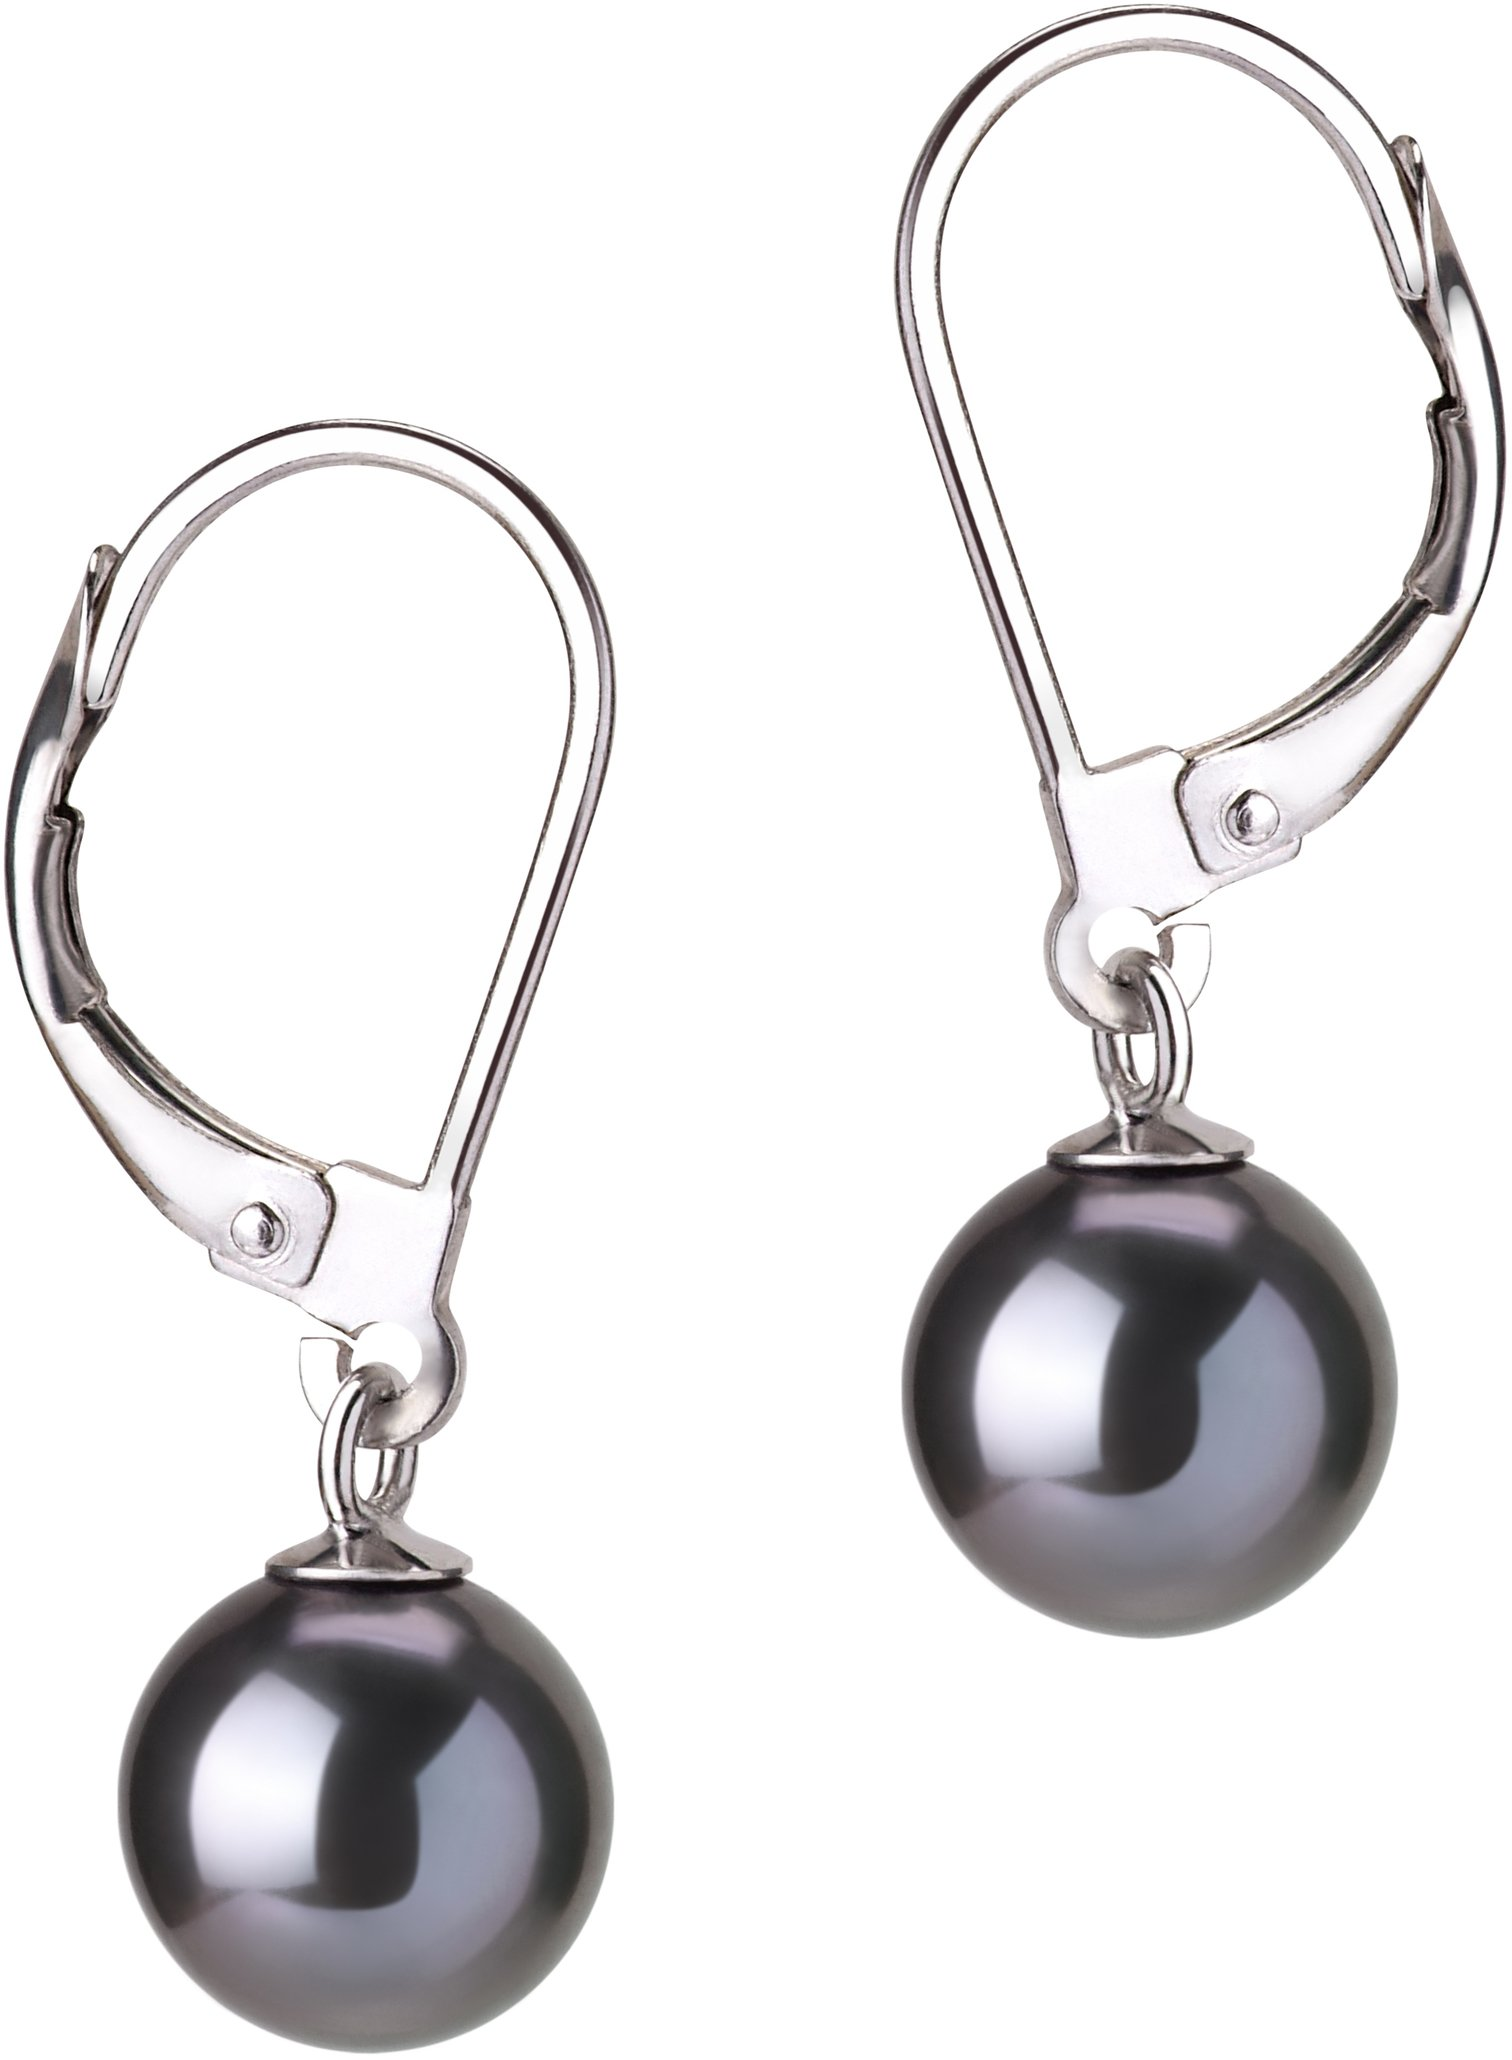 PearlsOnly - Marcella Black 7-8mm AAAA Quality Freshwater Cultured Pearl Earring Pair